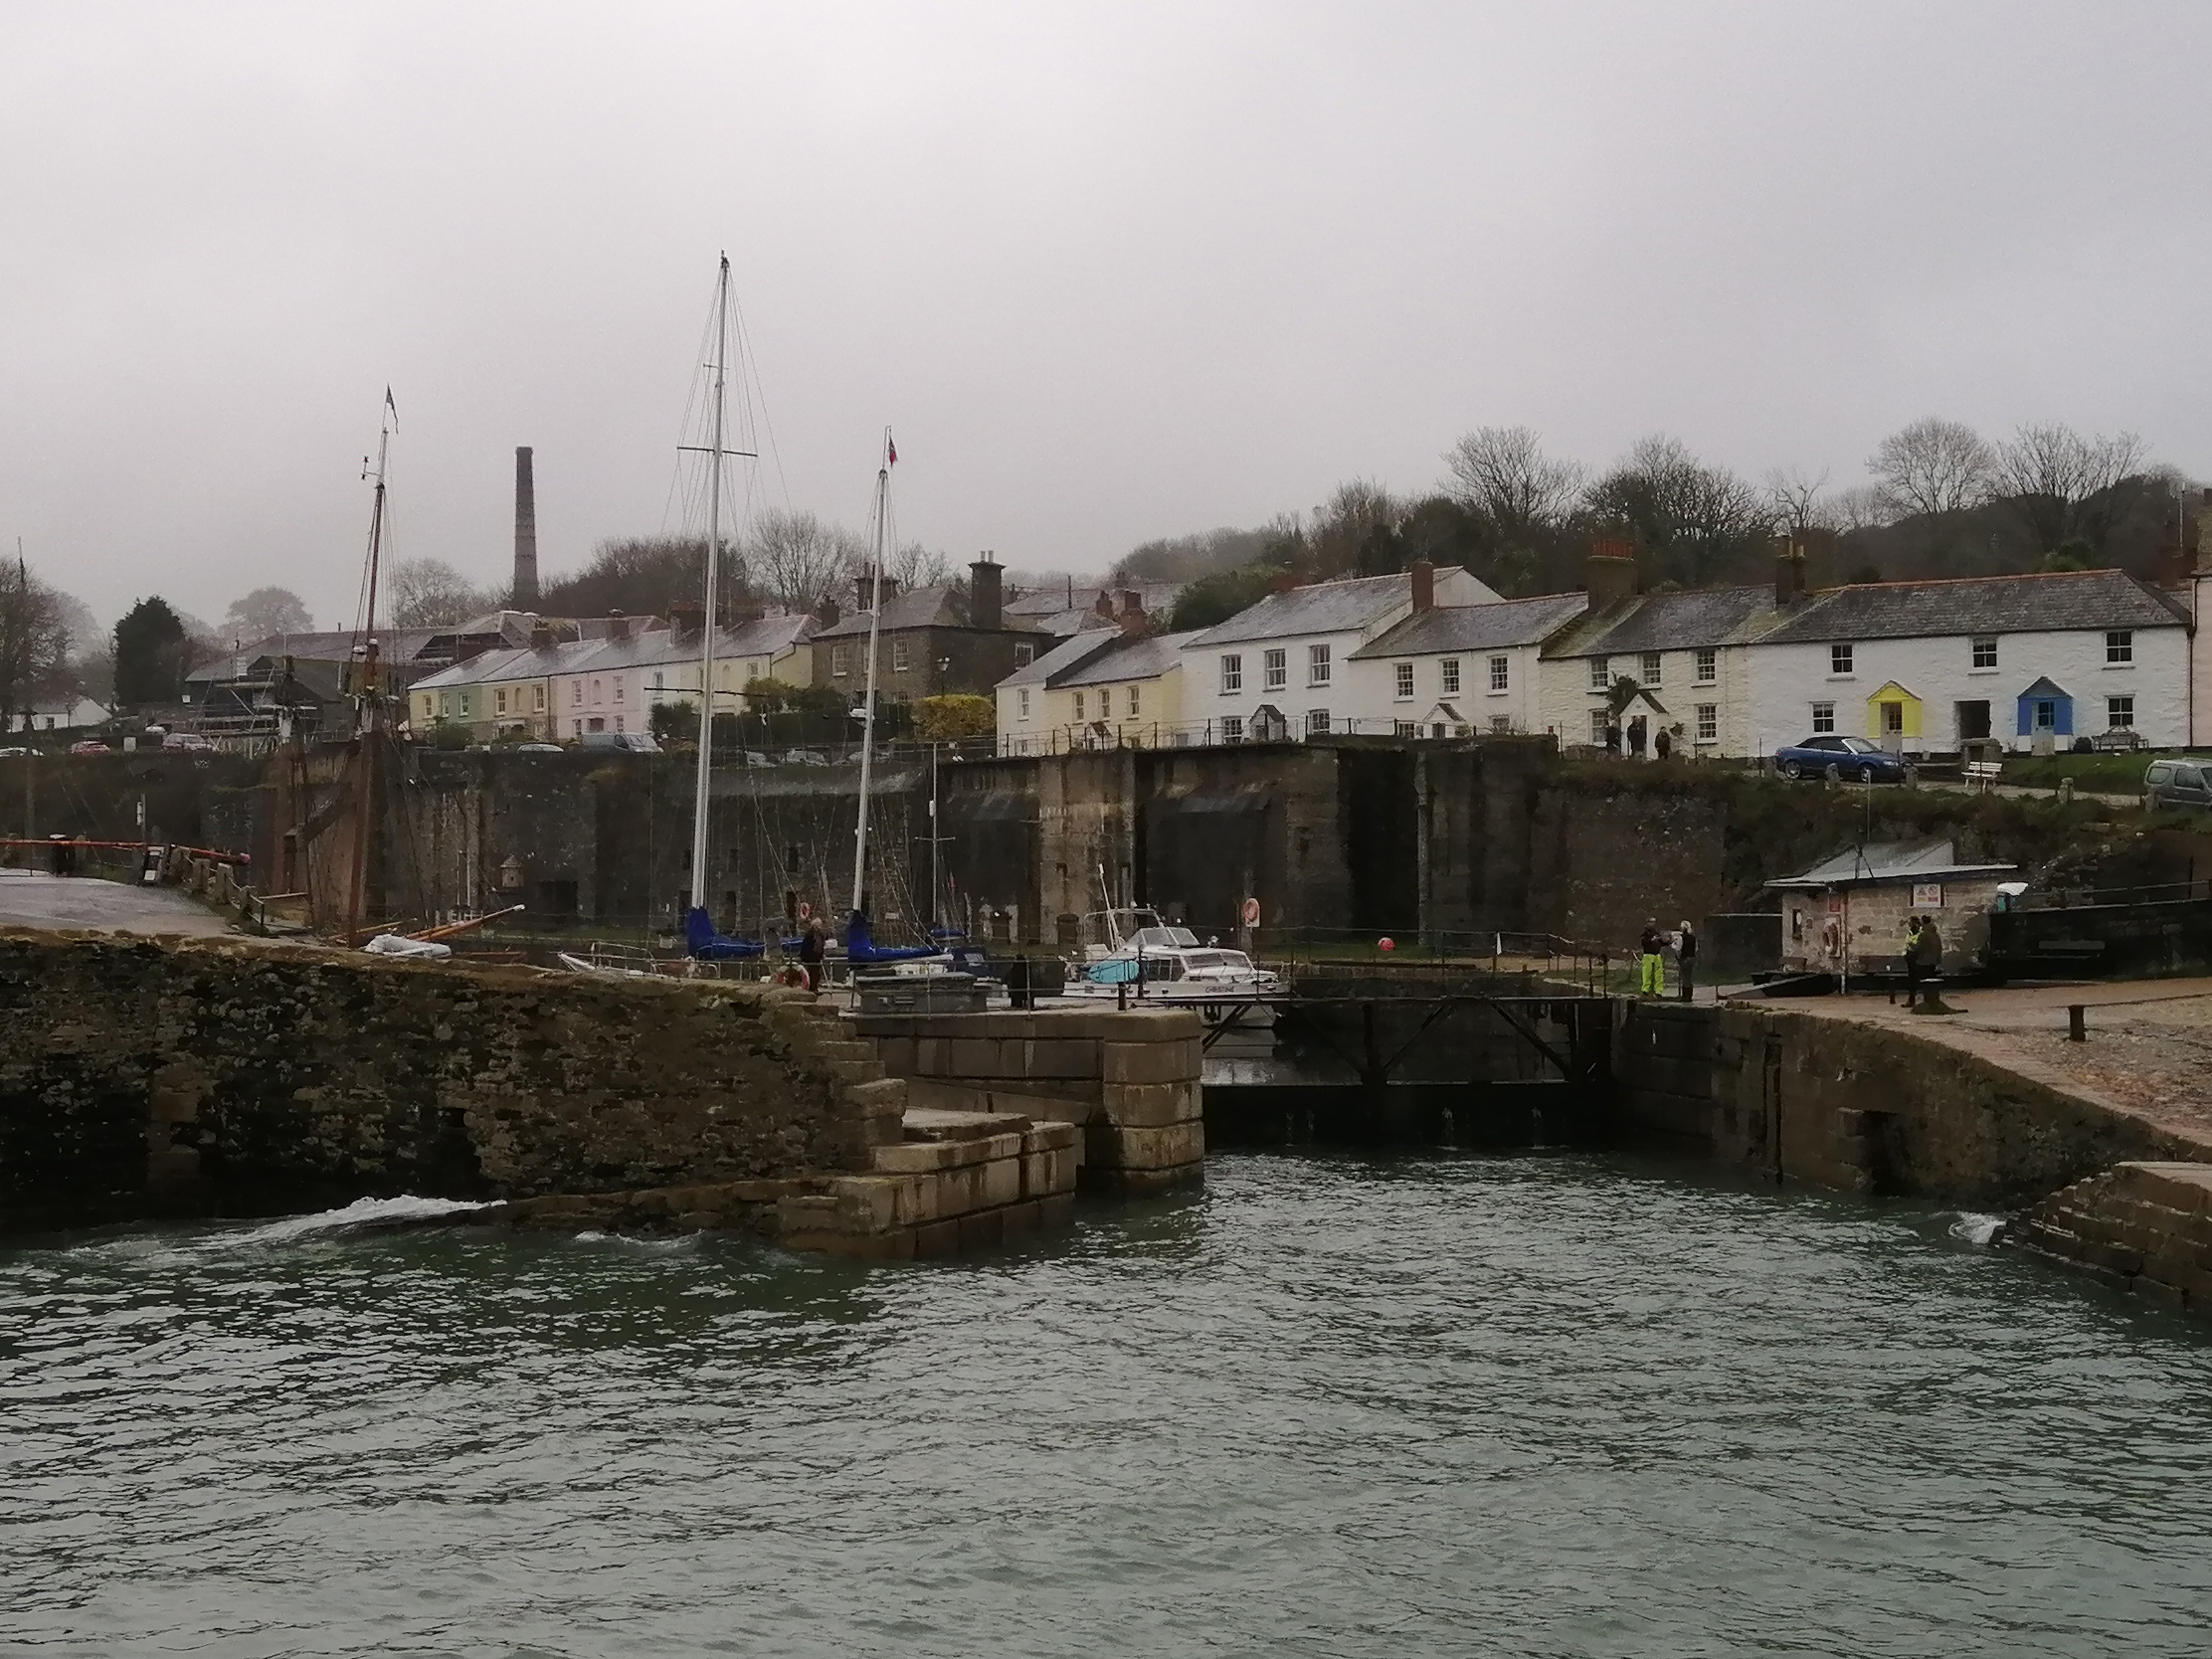 Harbour cottages at the historic port and film location of Charlestown